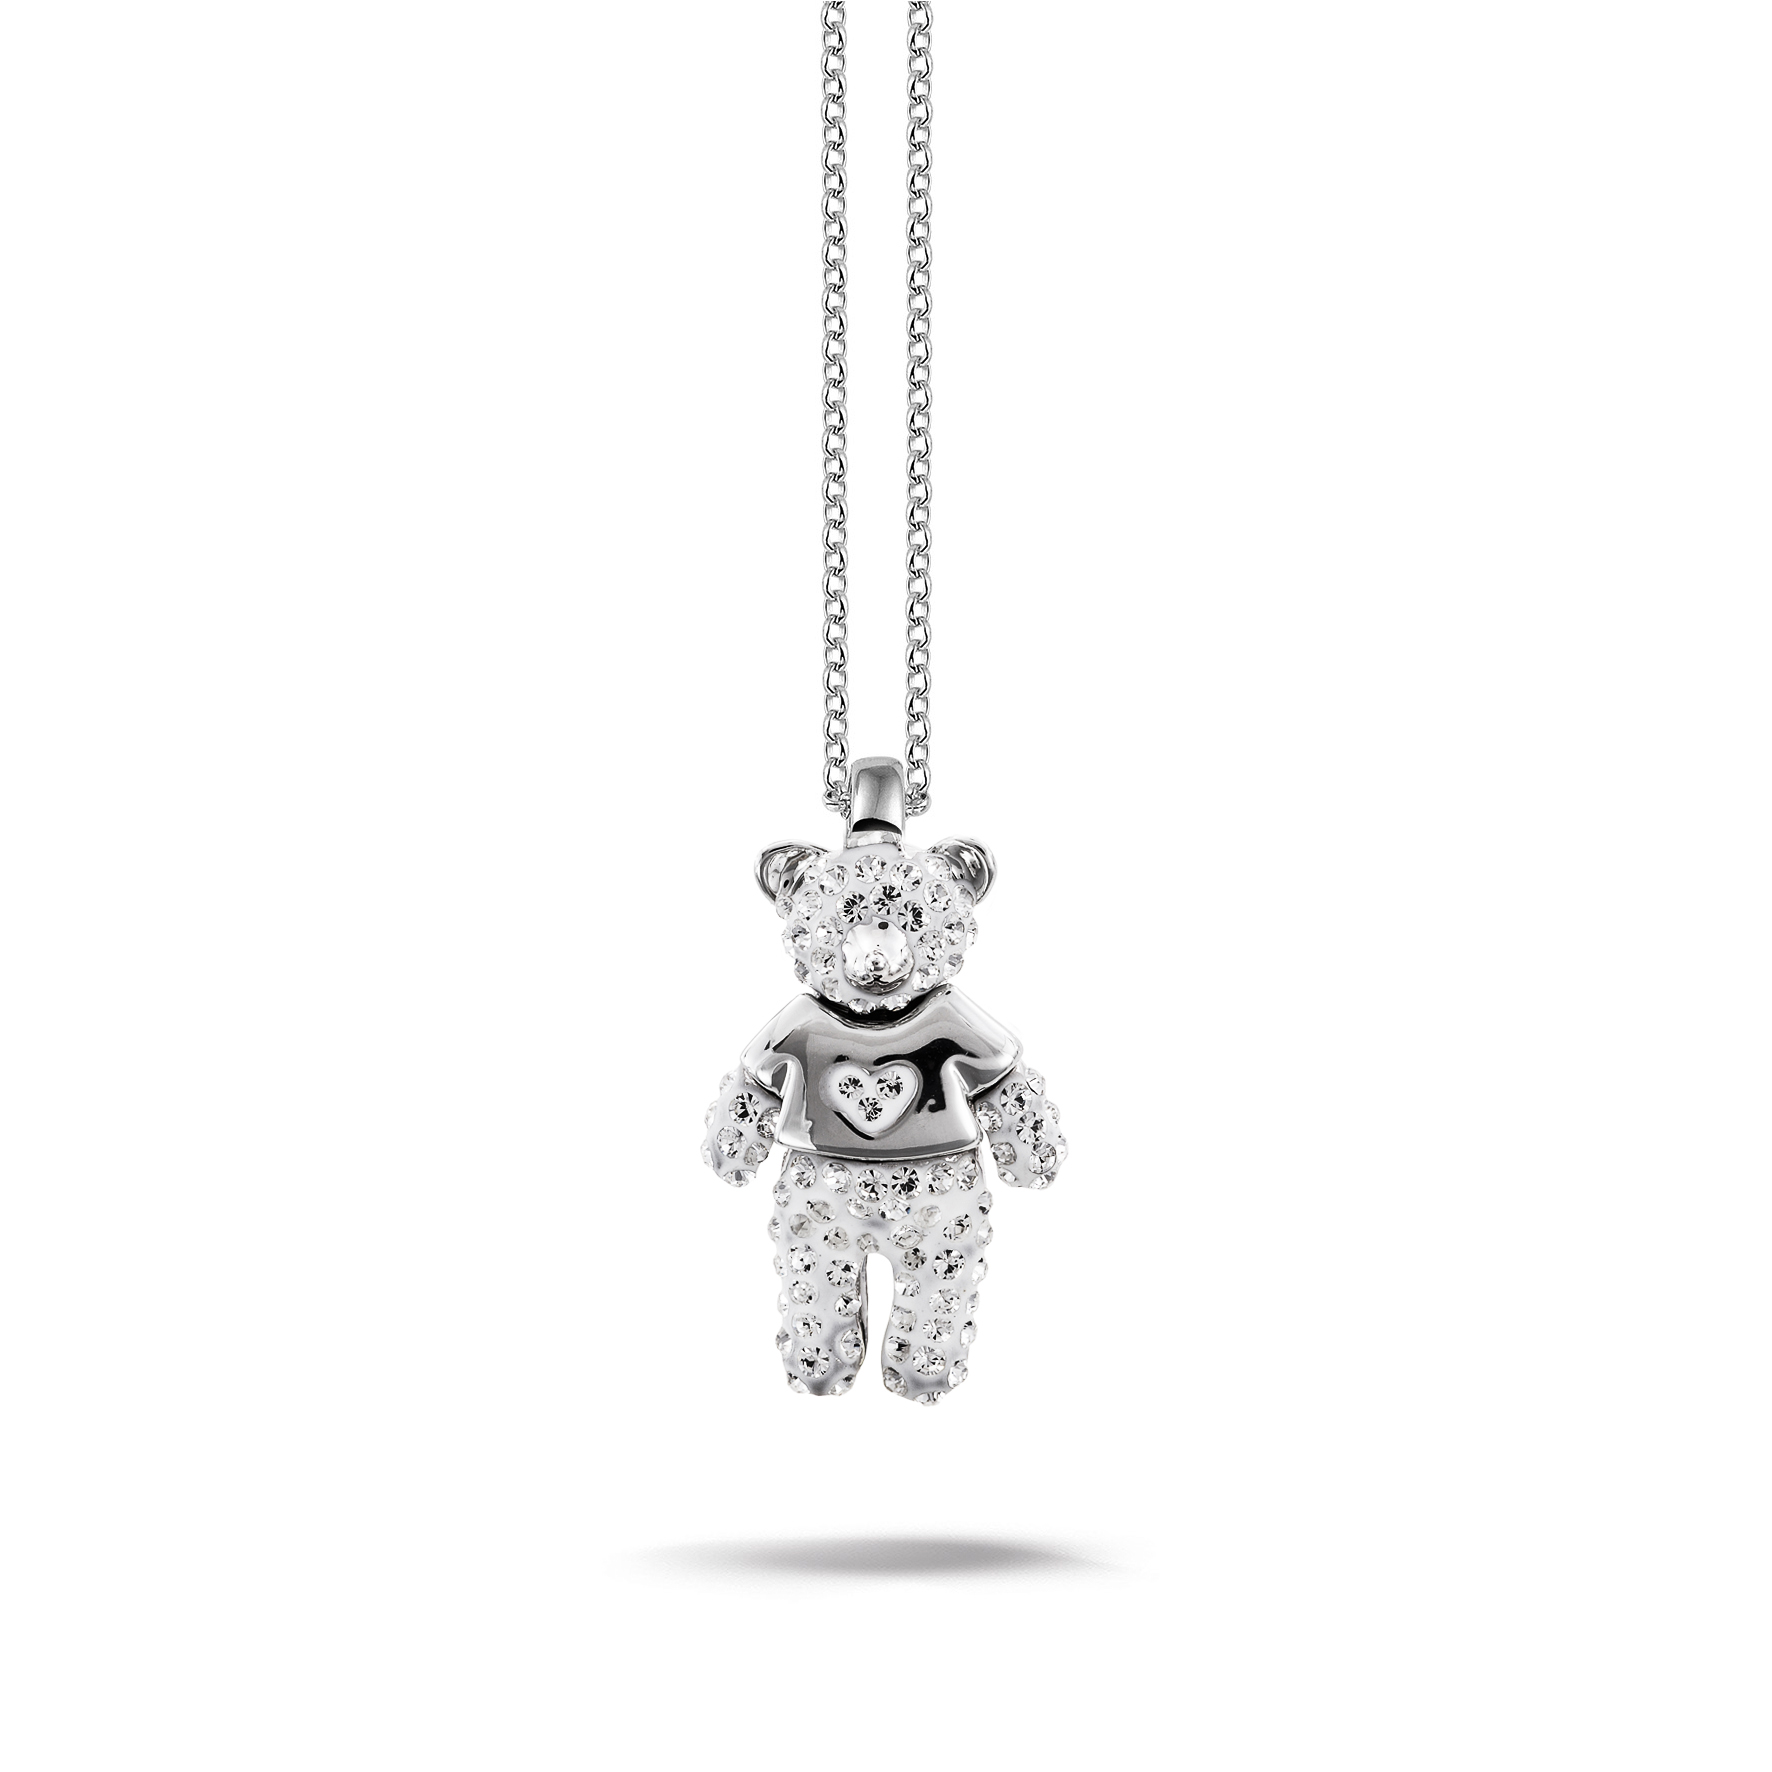 bear cute rhodium sj necklace shining dp pendant plated amazon teddy in jewel romantic jewellery